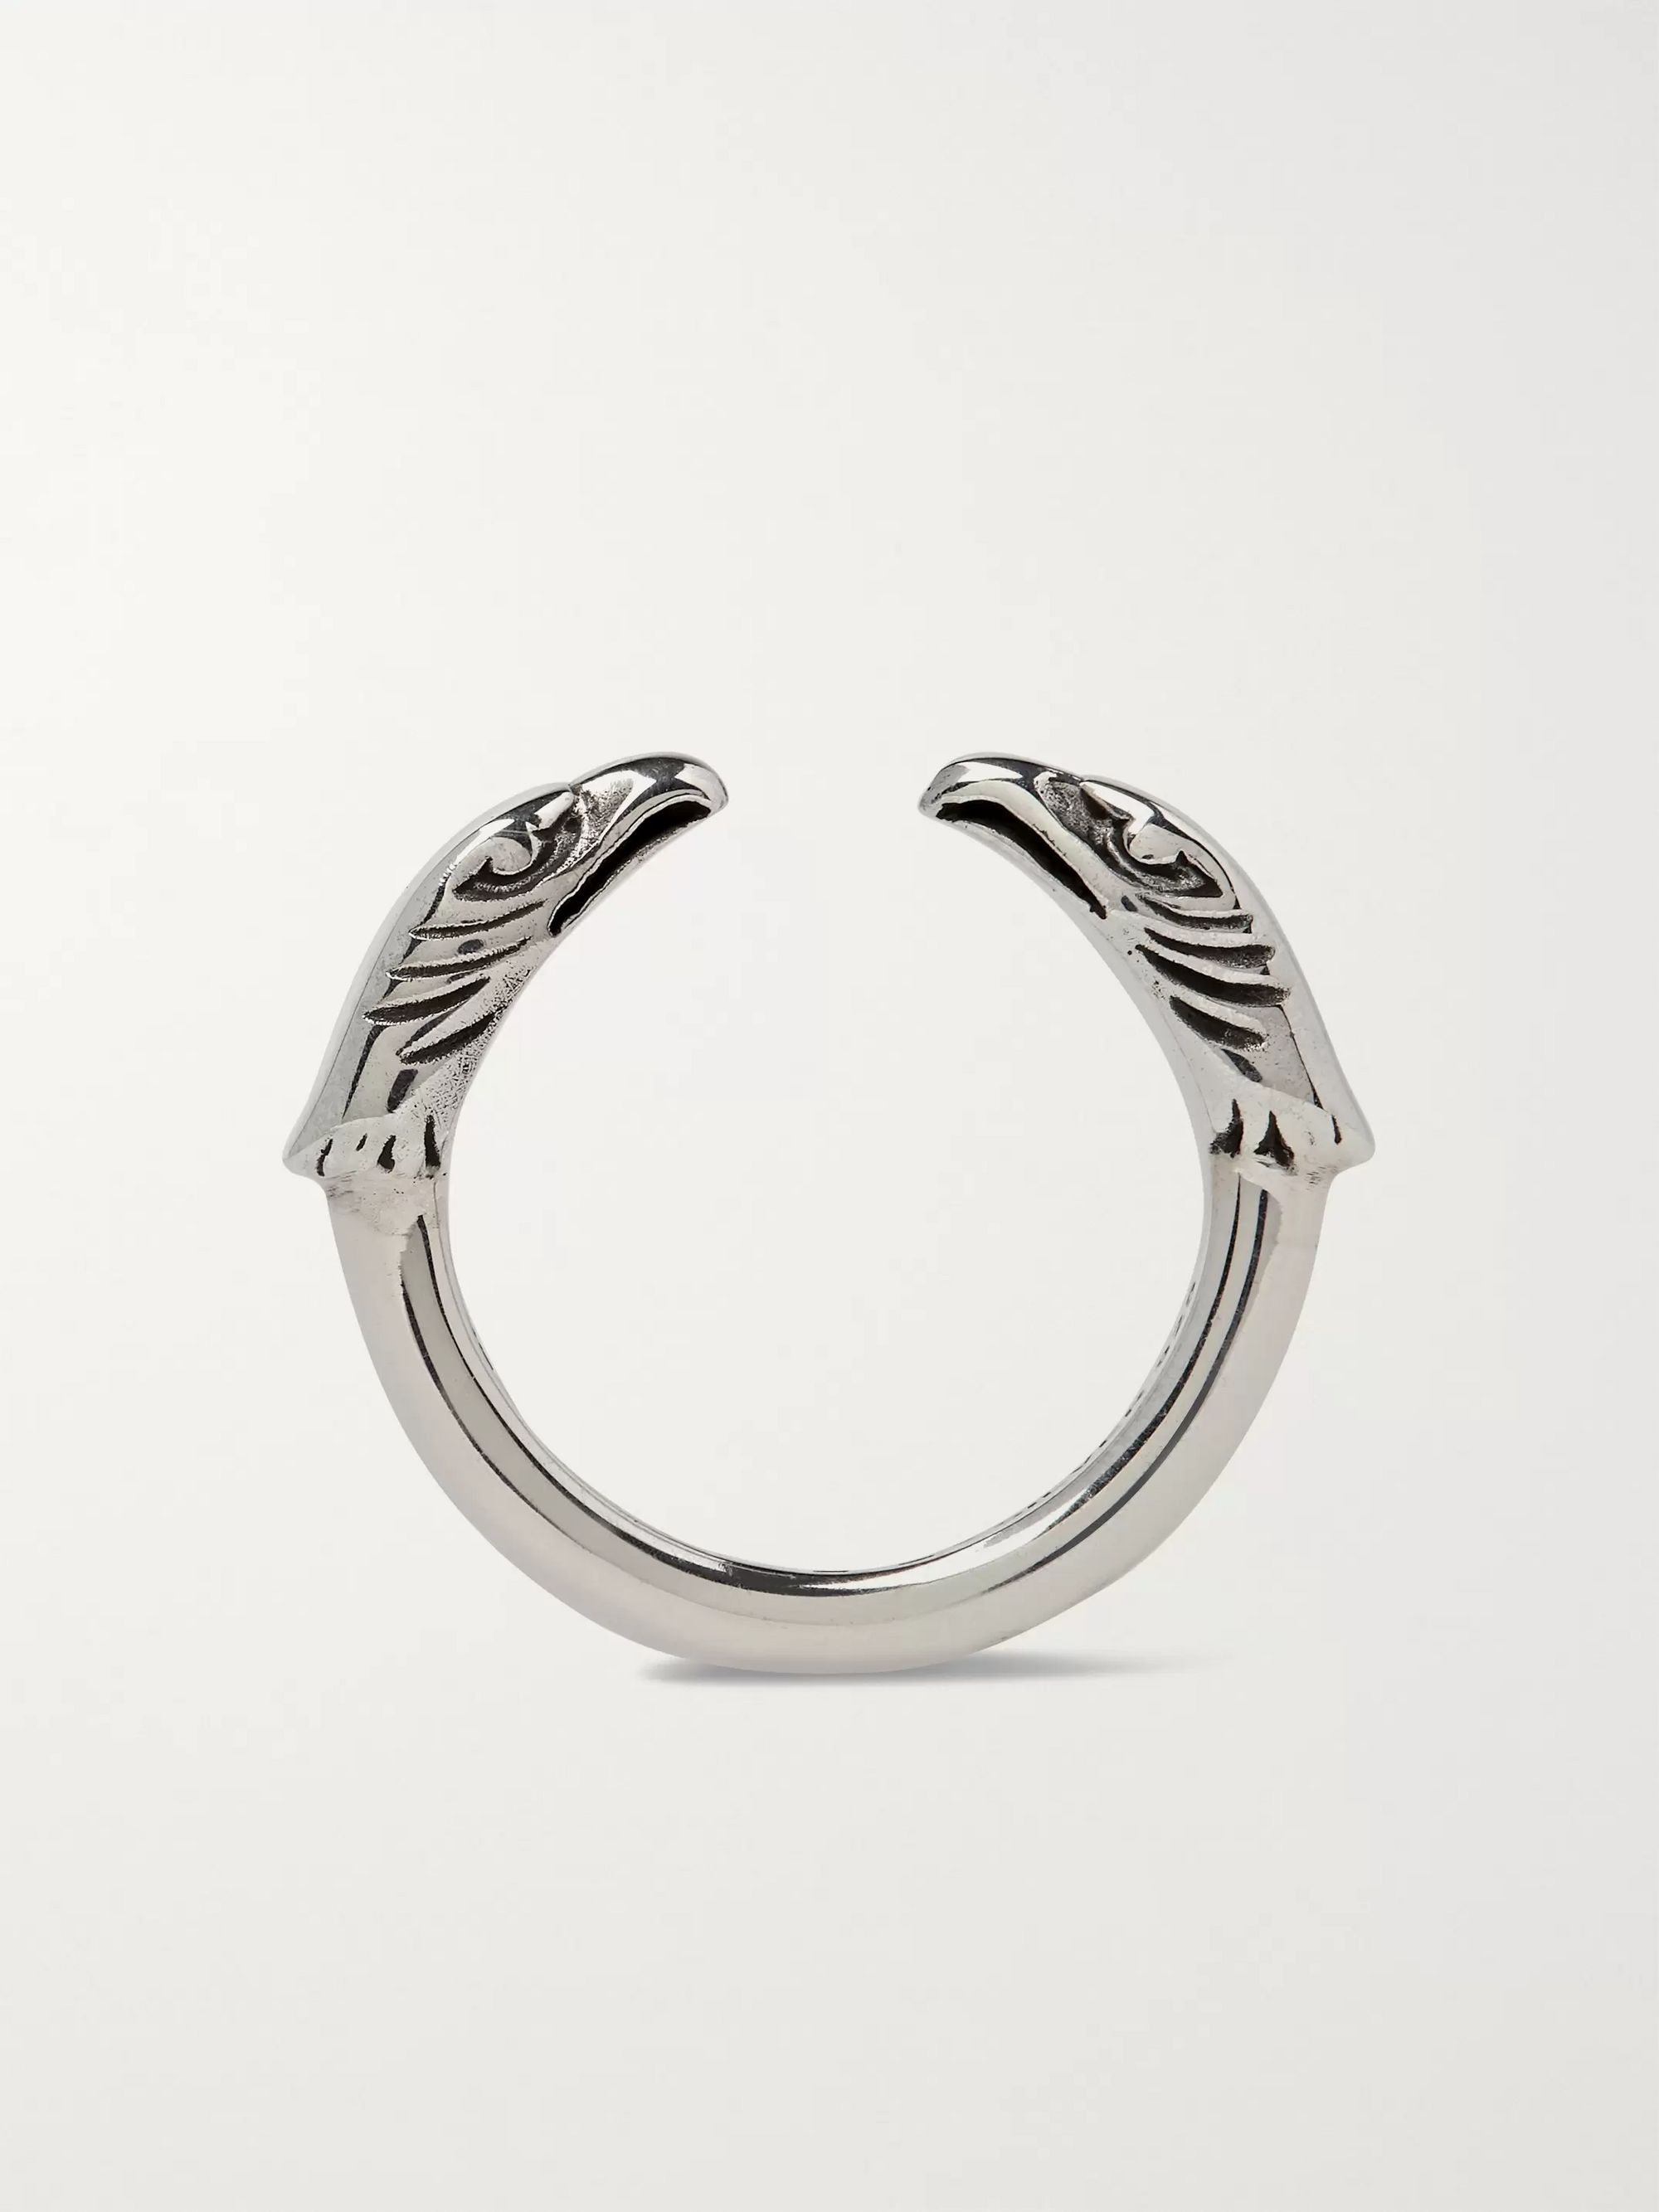 MAPLE Eagle Head Engraved Sterling Silver Ring